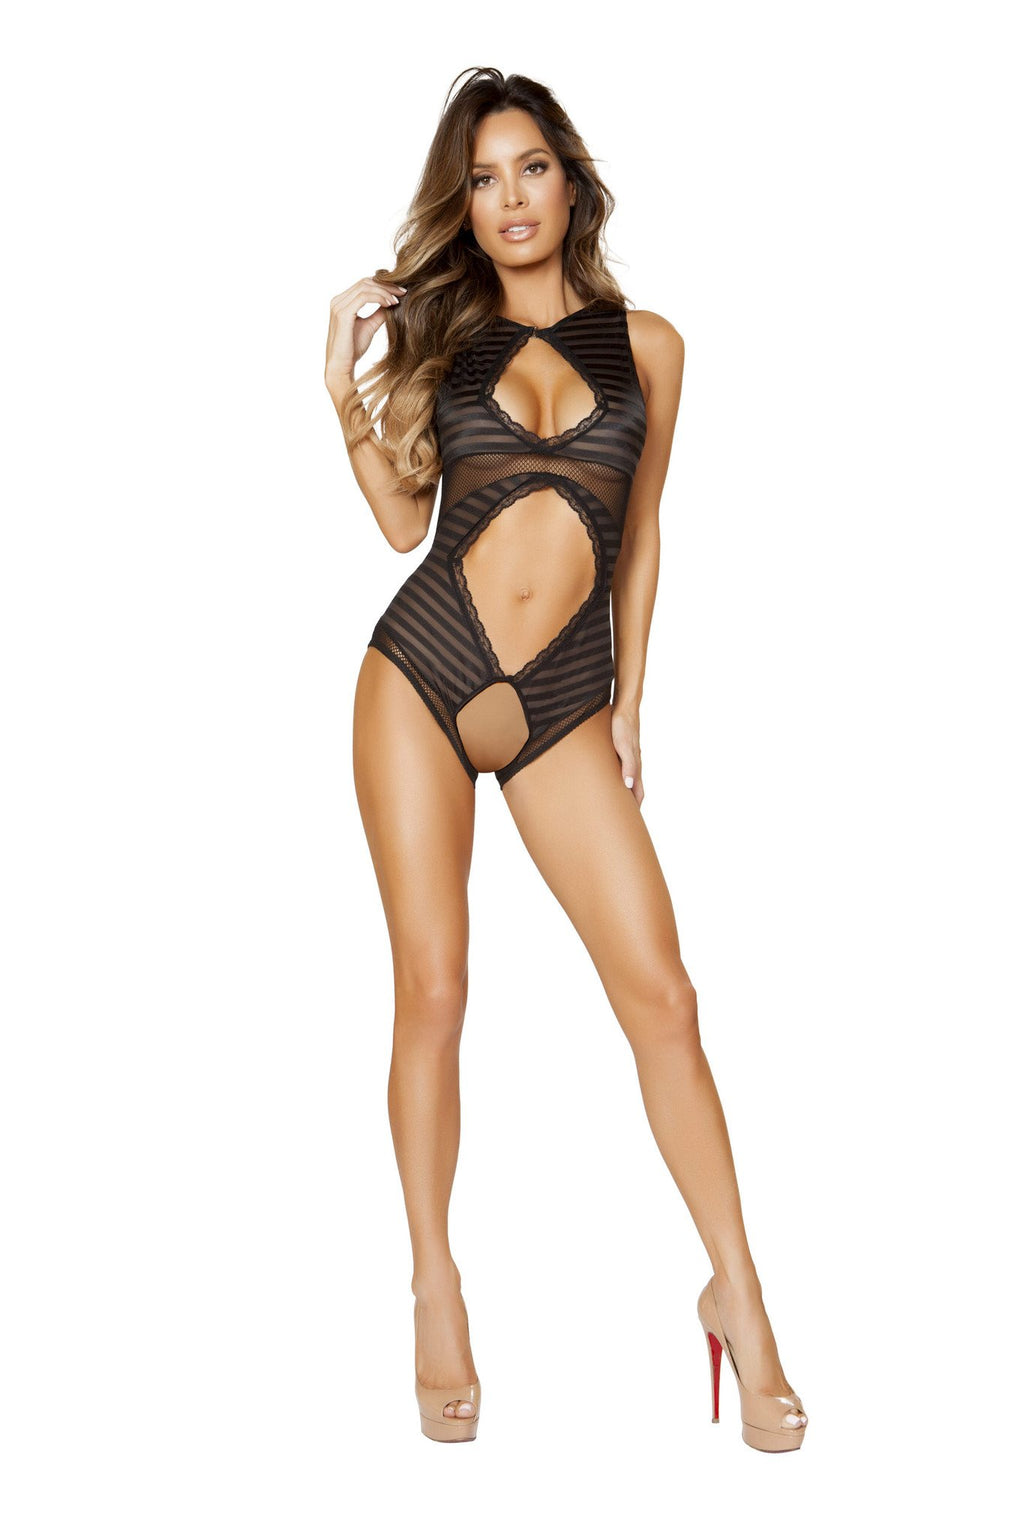 Teddy with Crotchless Bottom, & Multiple Cutout Front Details